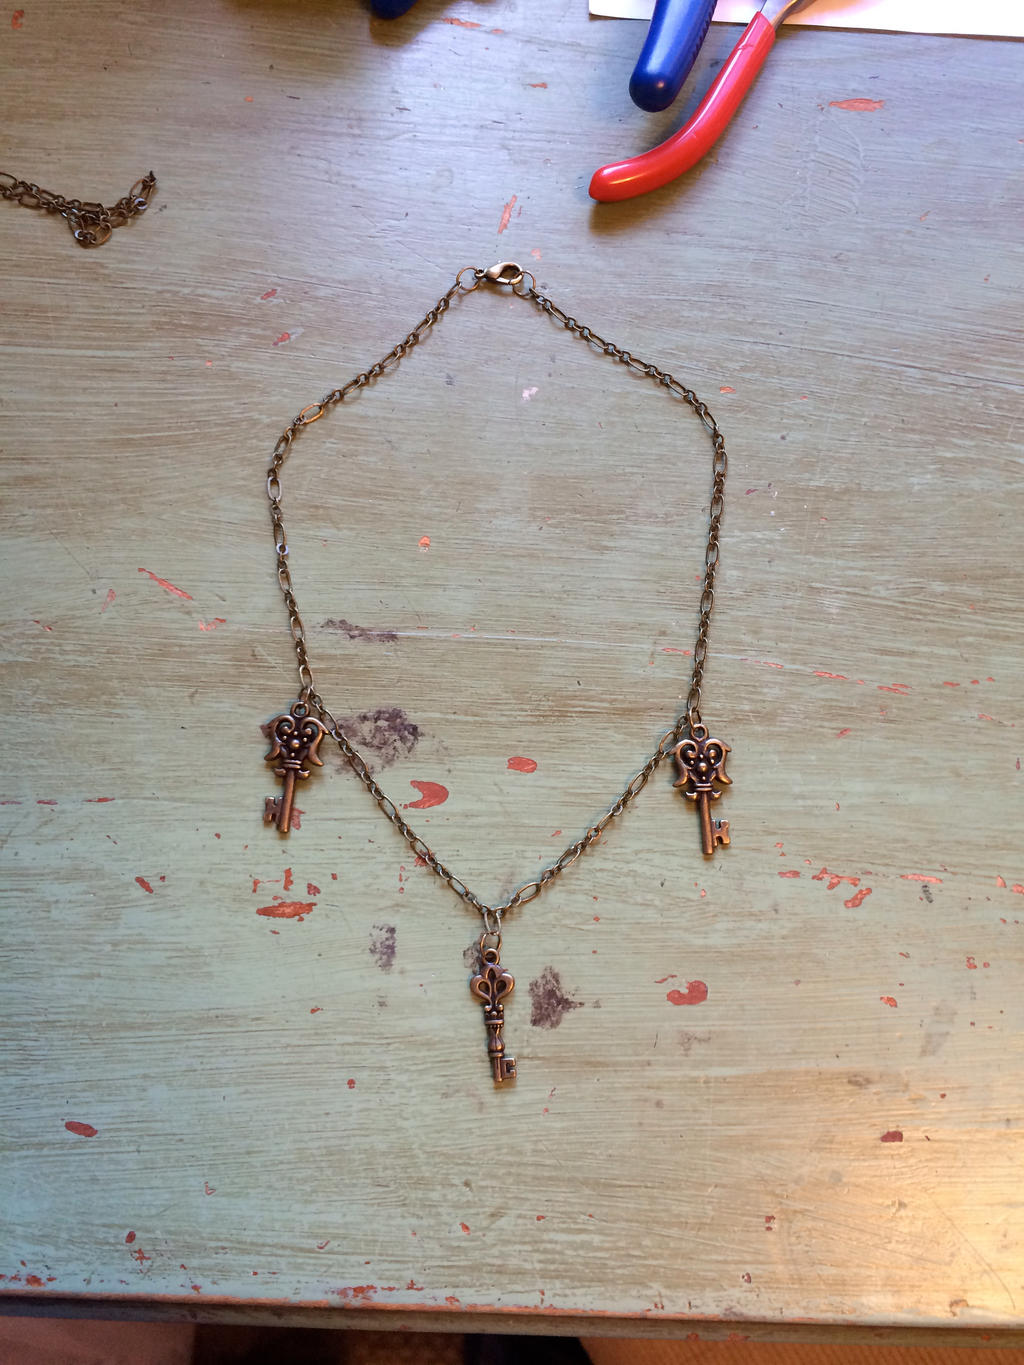 Hand made key necklace by 6seacat9 on deviantart for Art made with keys